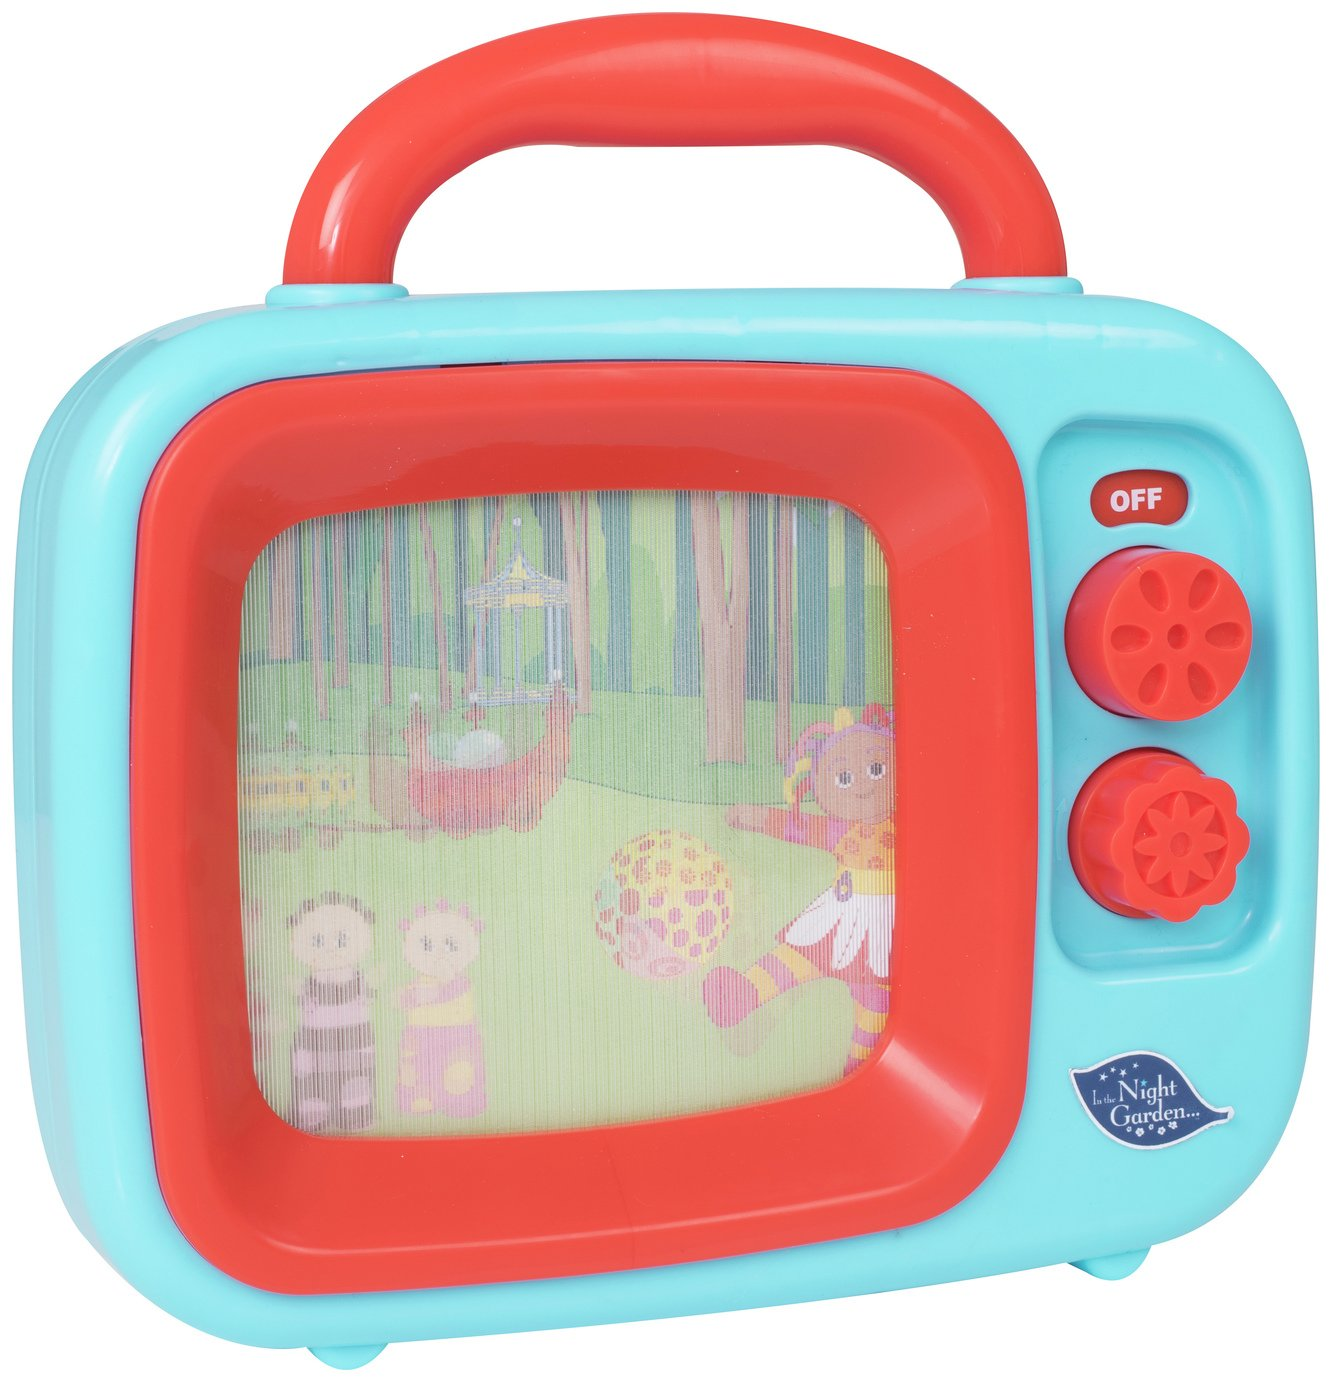 In the Night Garden My First TV from In the Night Garden